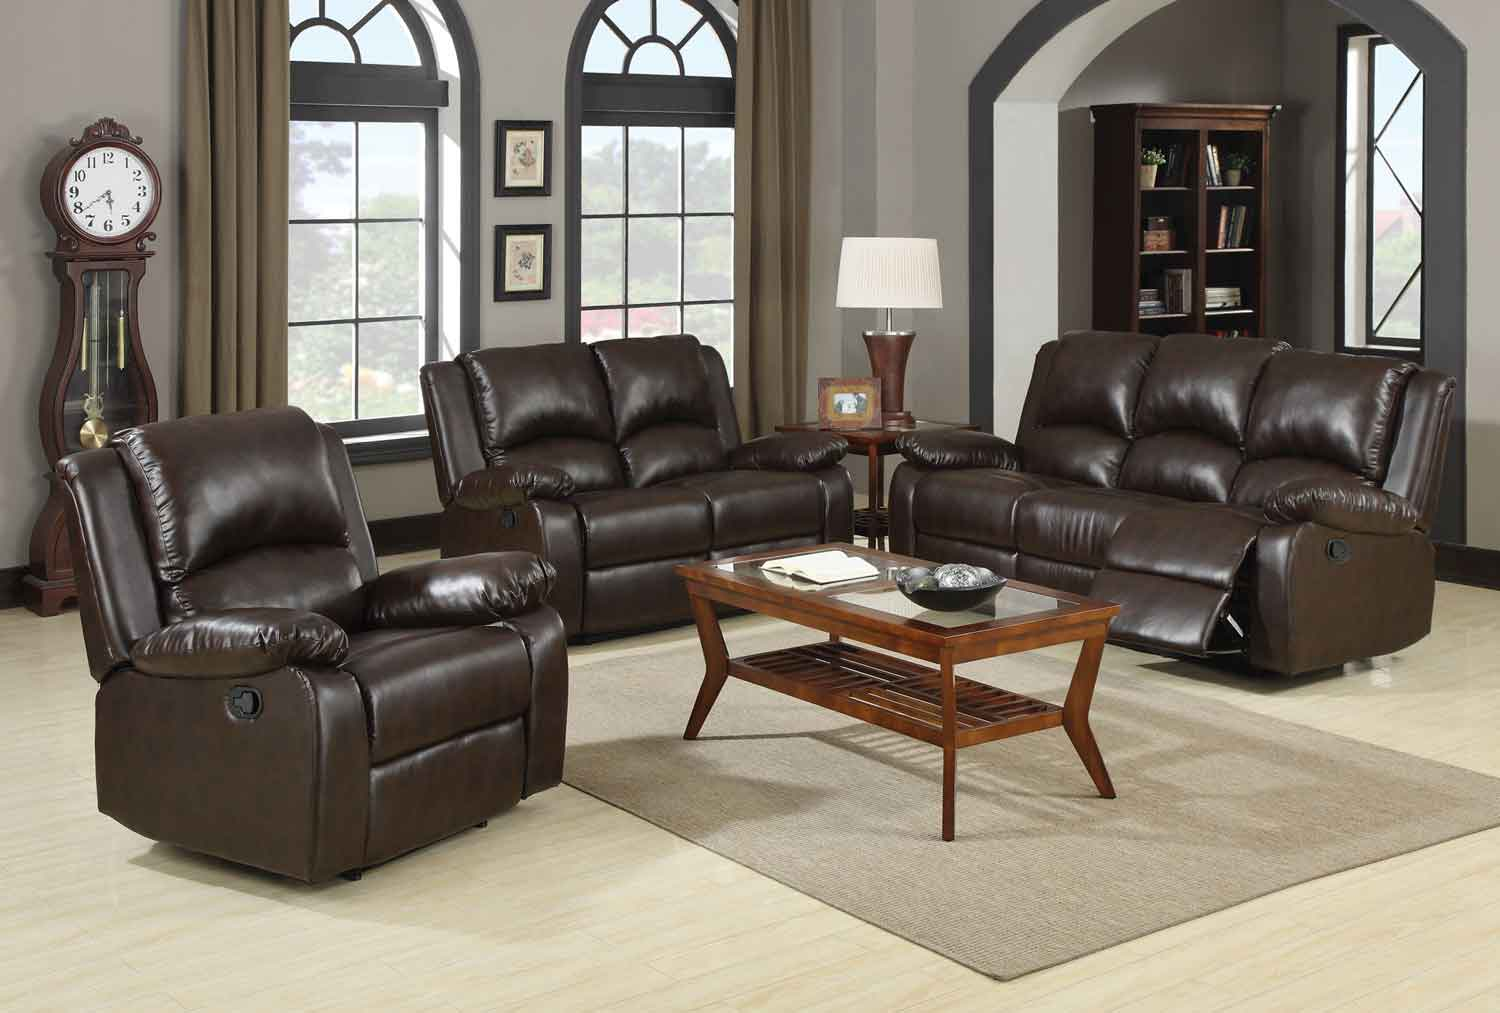 Coaster Boston Motion Living Room Set - Brown